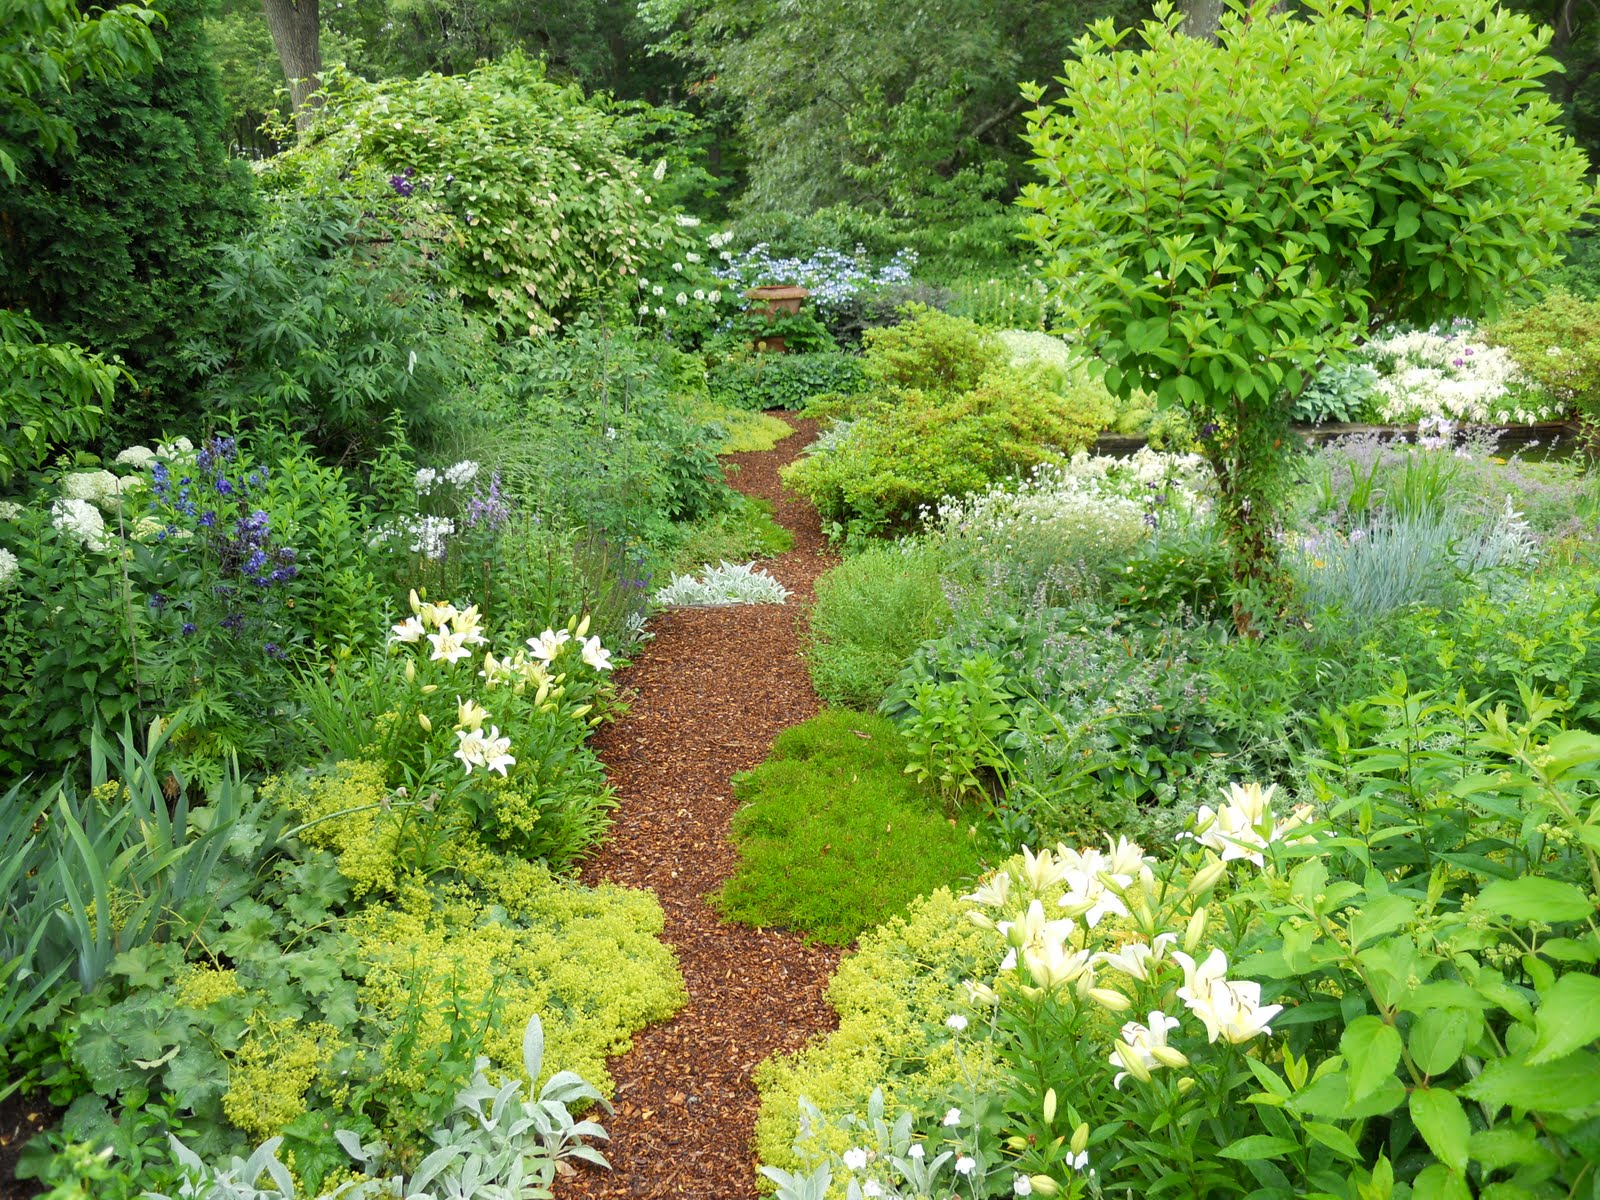 Gardens With Mulch submited images Pic2Fly